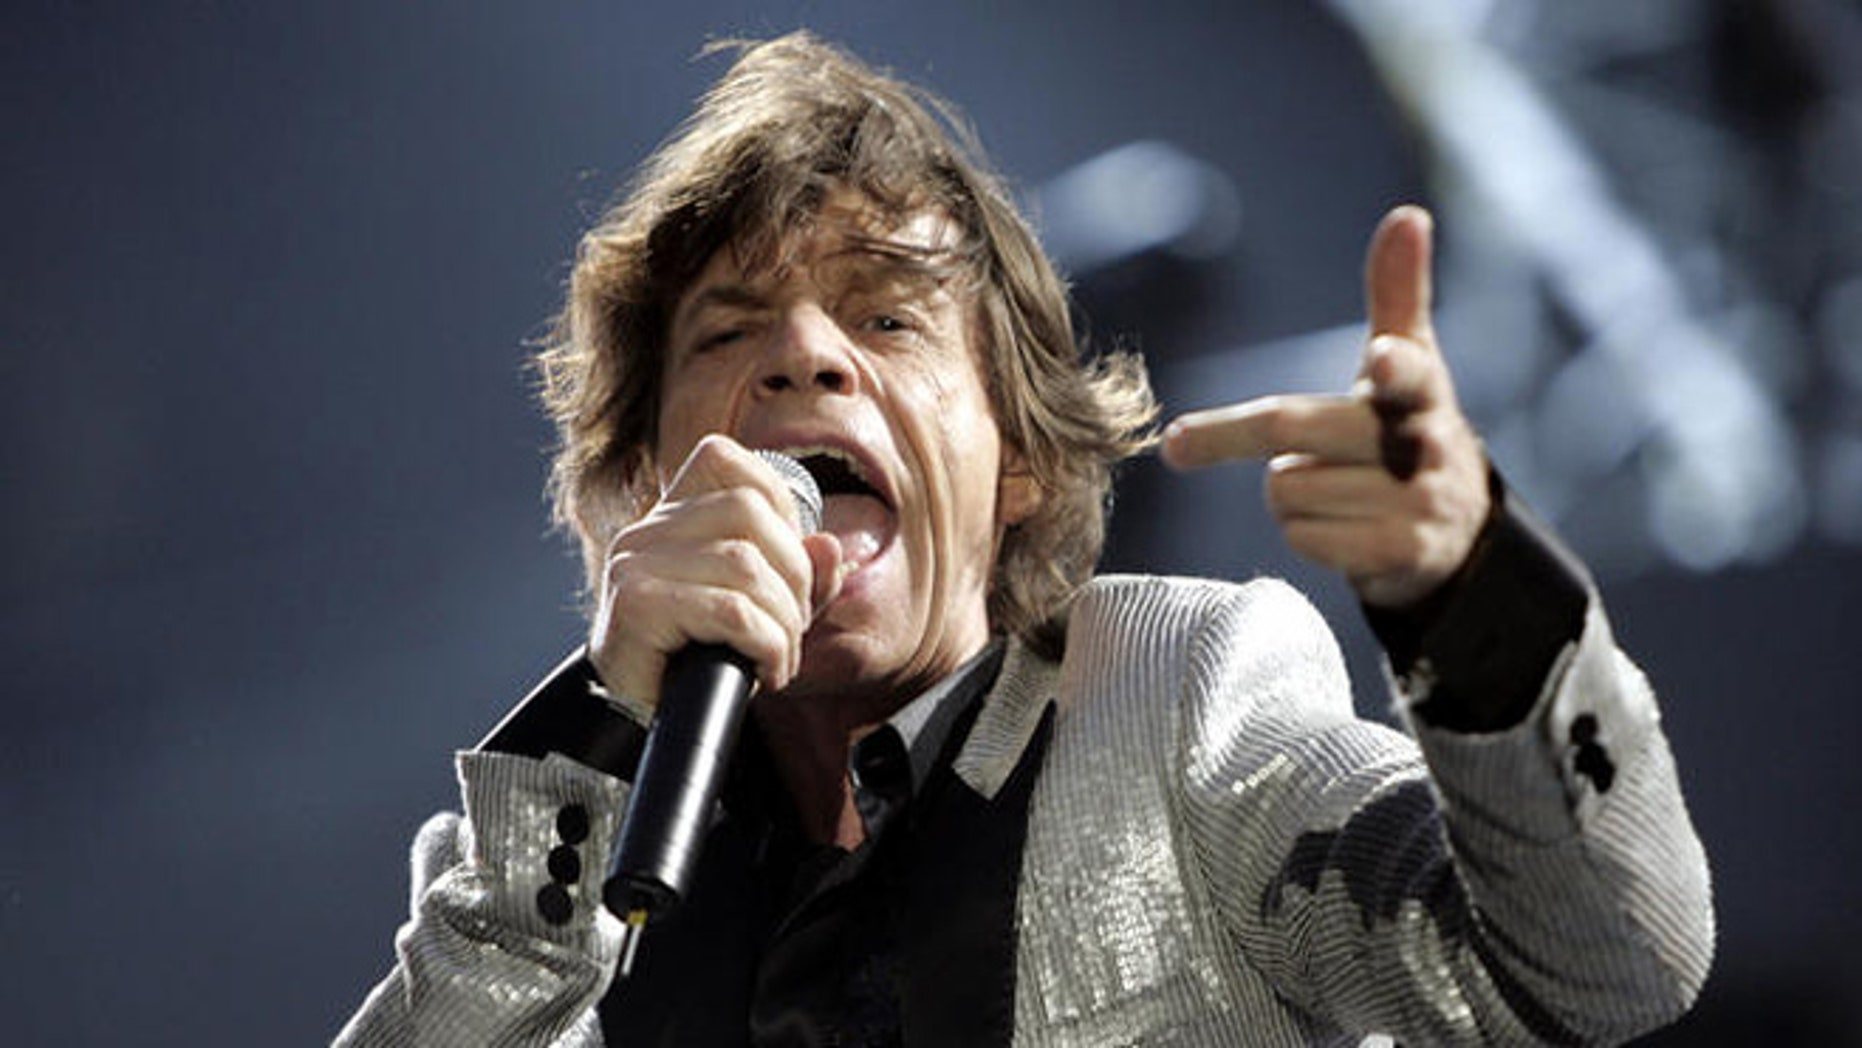 Mick Jagger performs during the Rolling Stones concert at the San Siro stadium in Milan, Italy, Tuesday, July 11, 2006. The Rolling Stones started their 'A Bigger Band' European tour in Milan. (AP Photo/Luca Bruno)